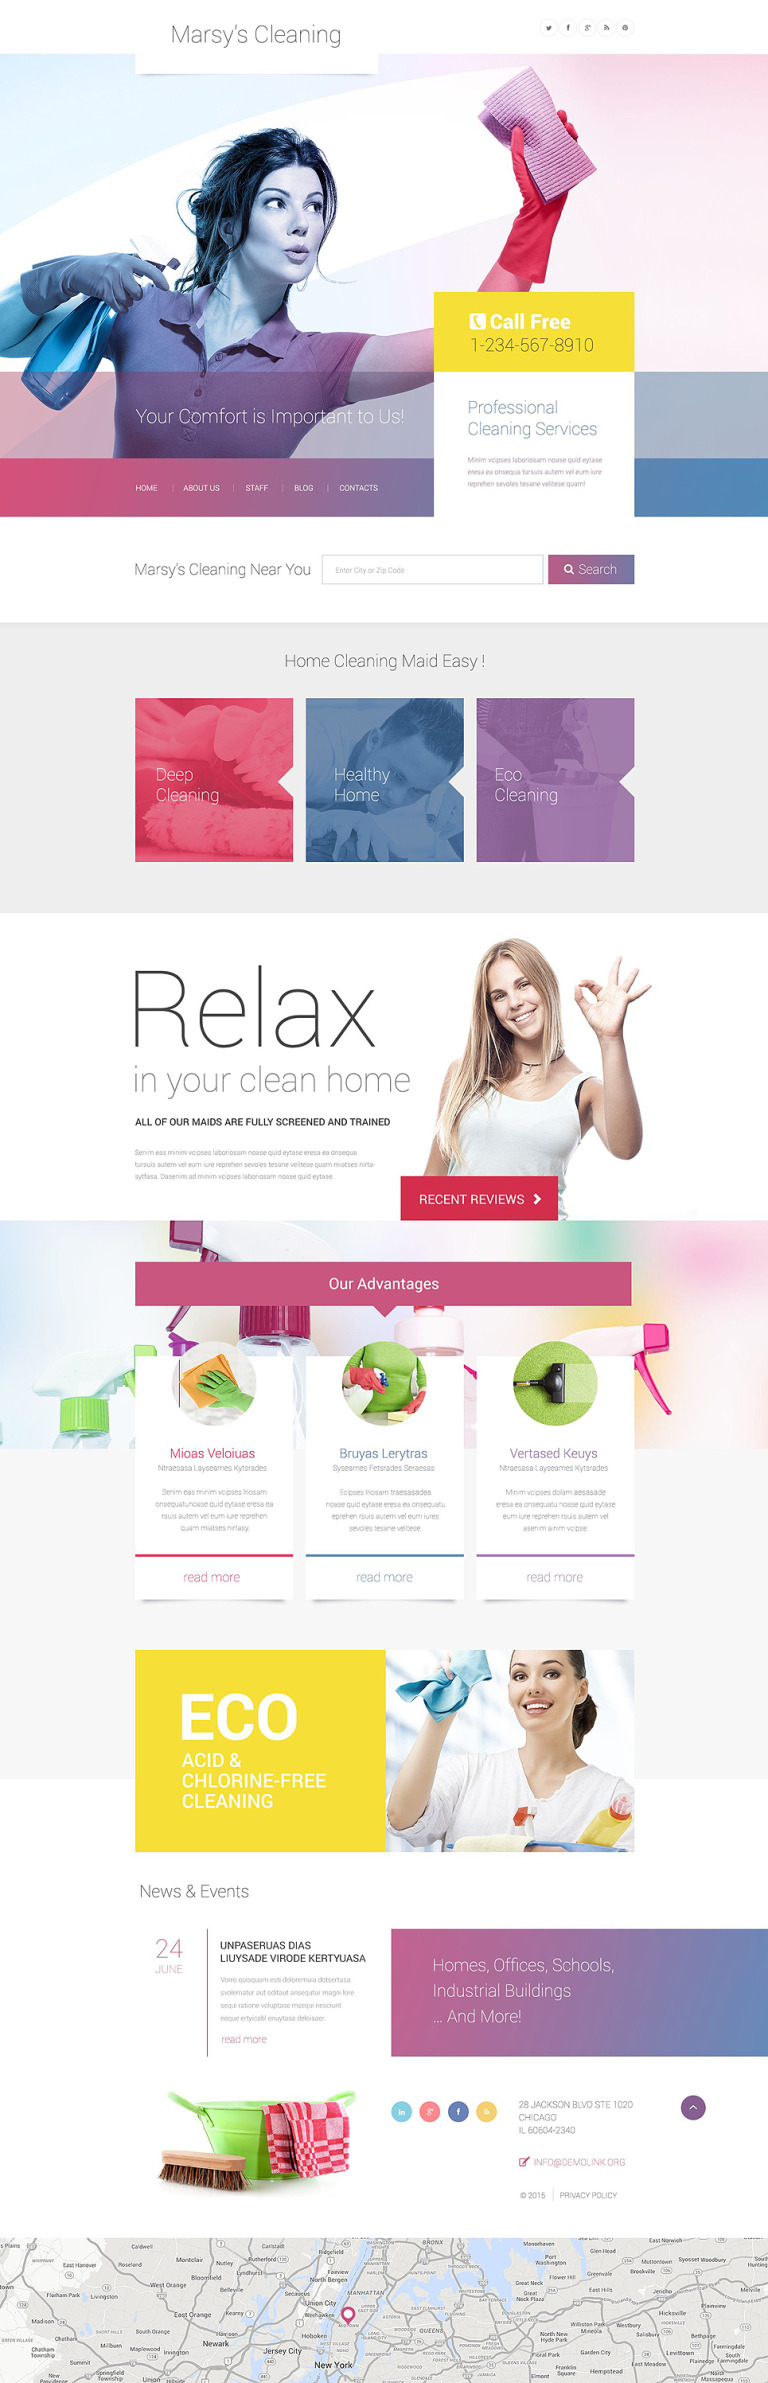 Marsy's Cleaning WordPress Theme New Screenshots BIG